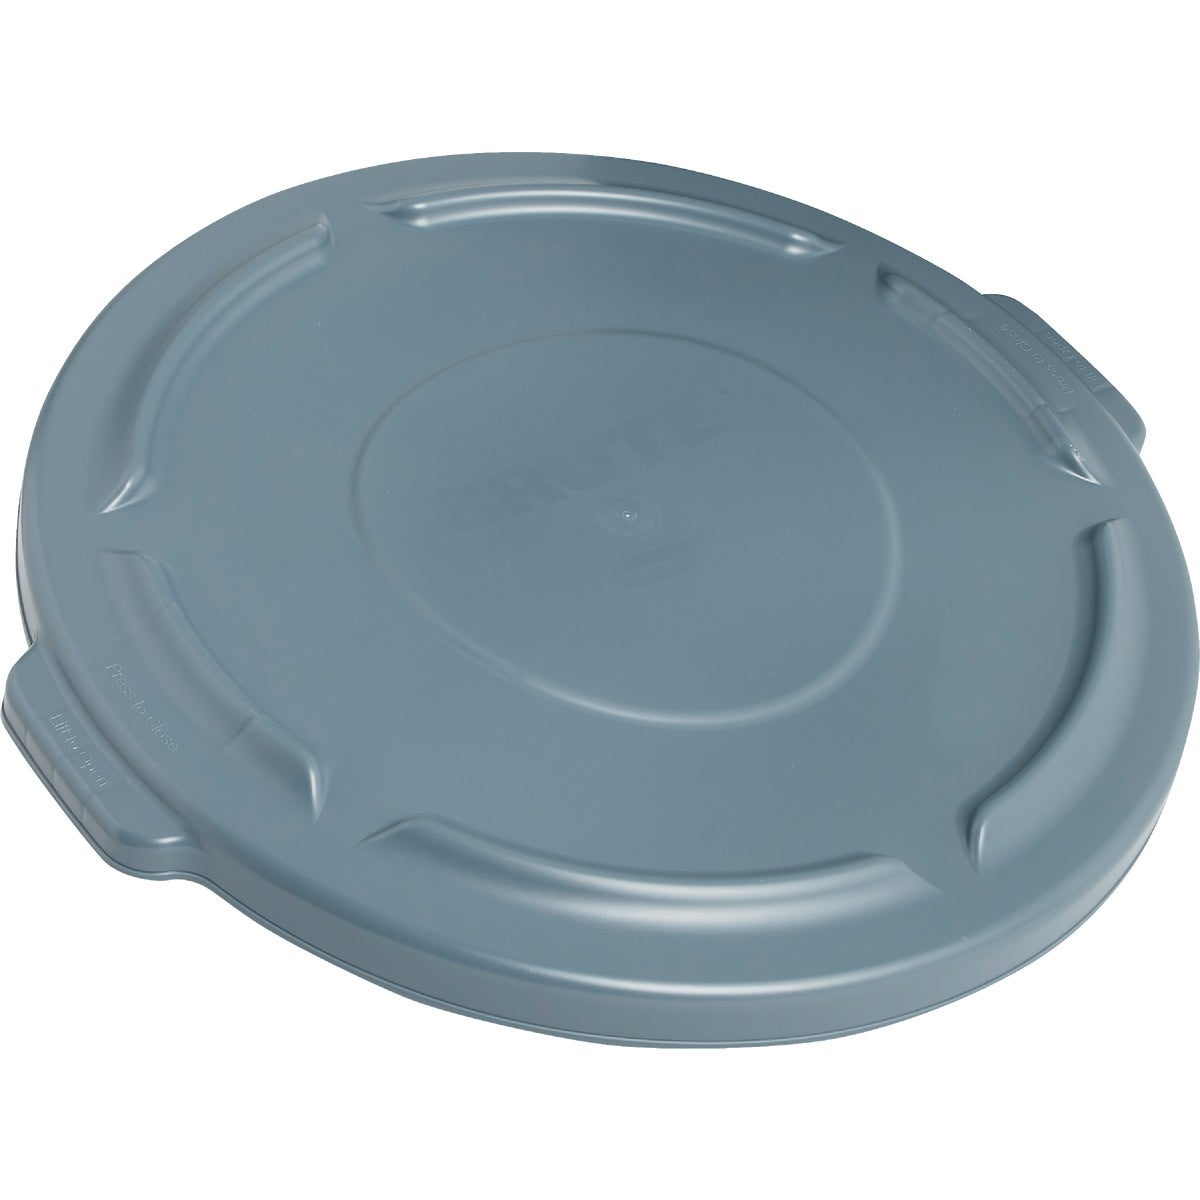 GRAY TRASH CAN LID - FG263100GRAY by Rubbermaid Comm Prod